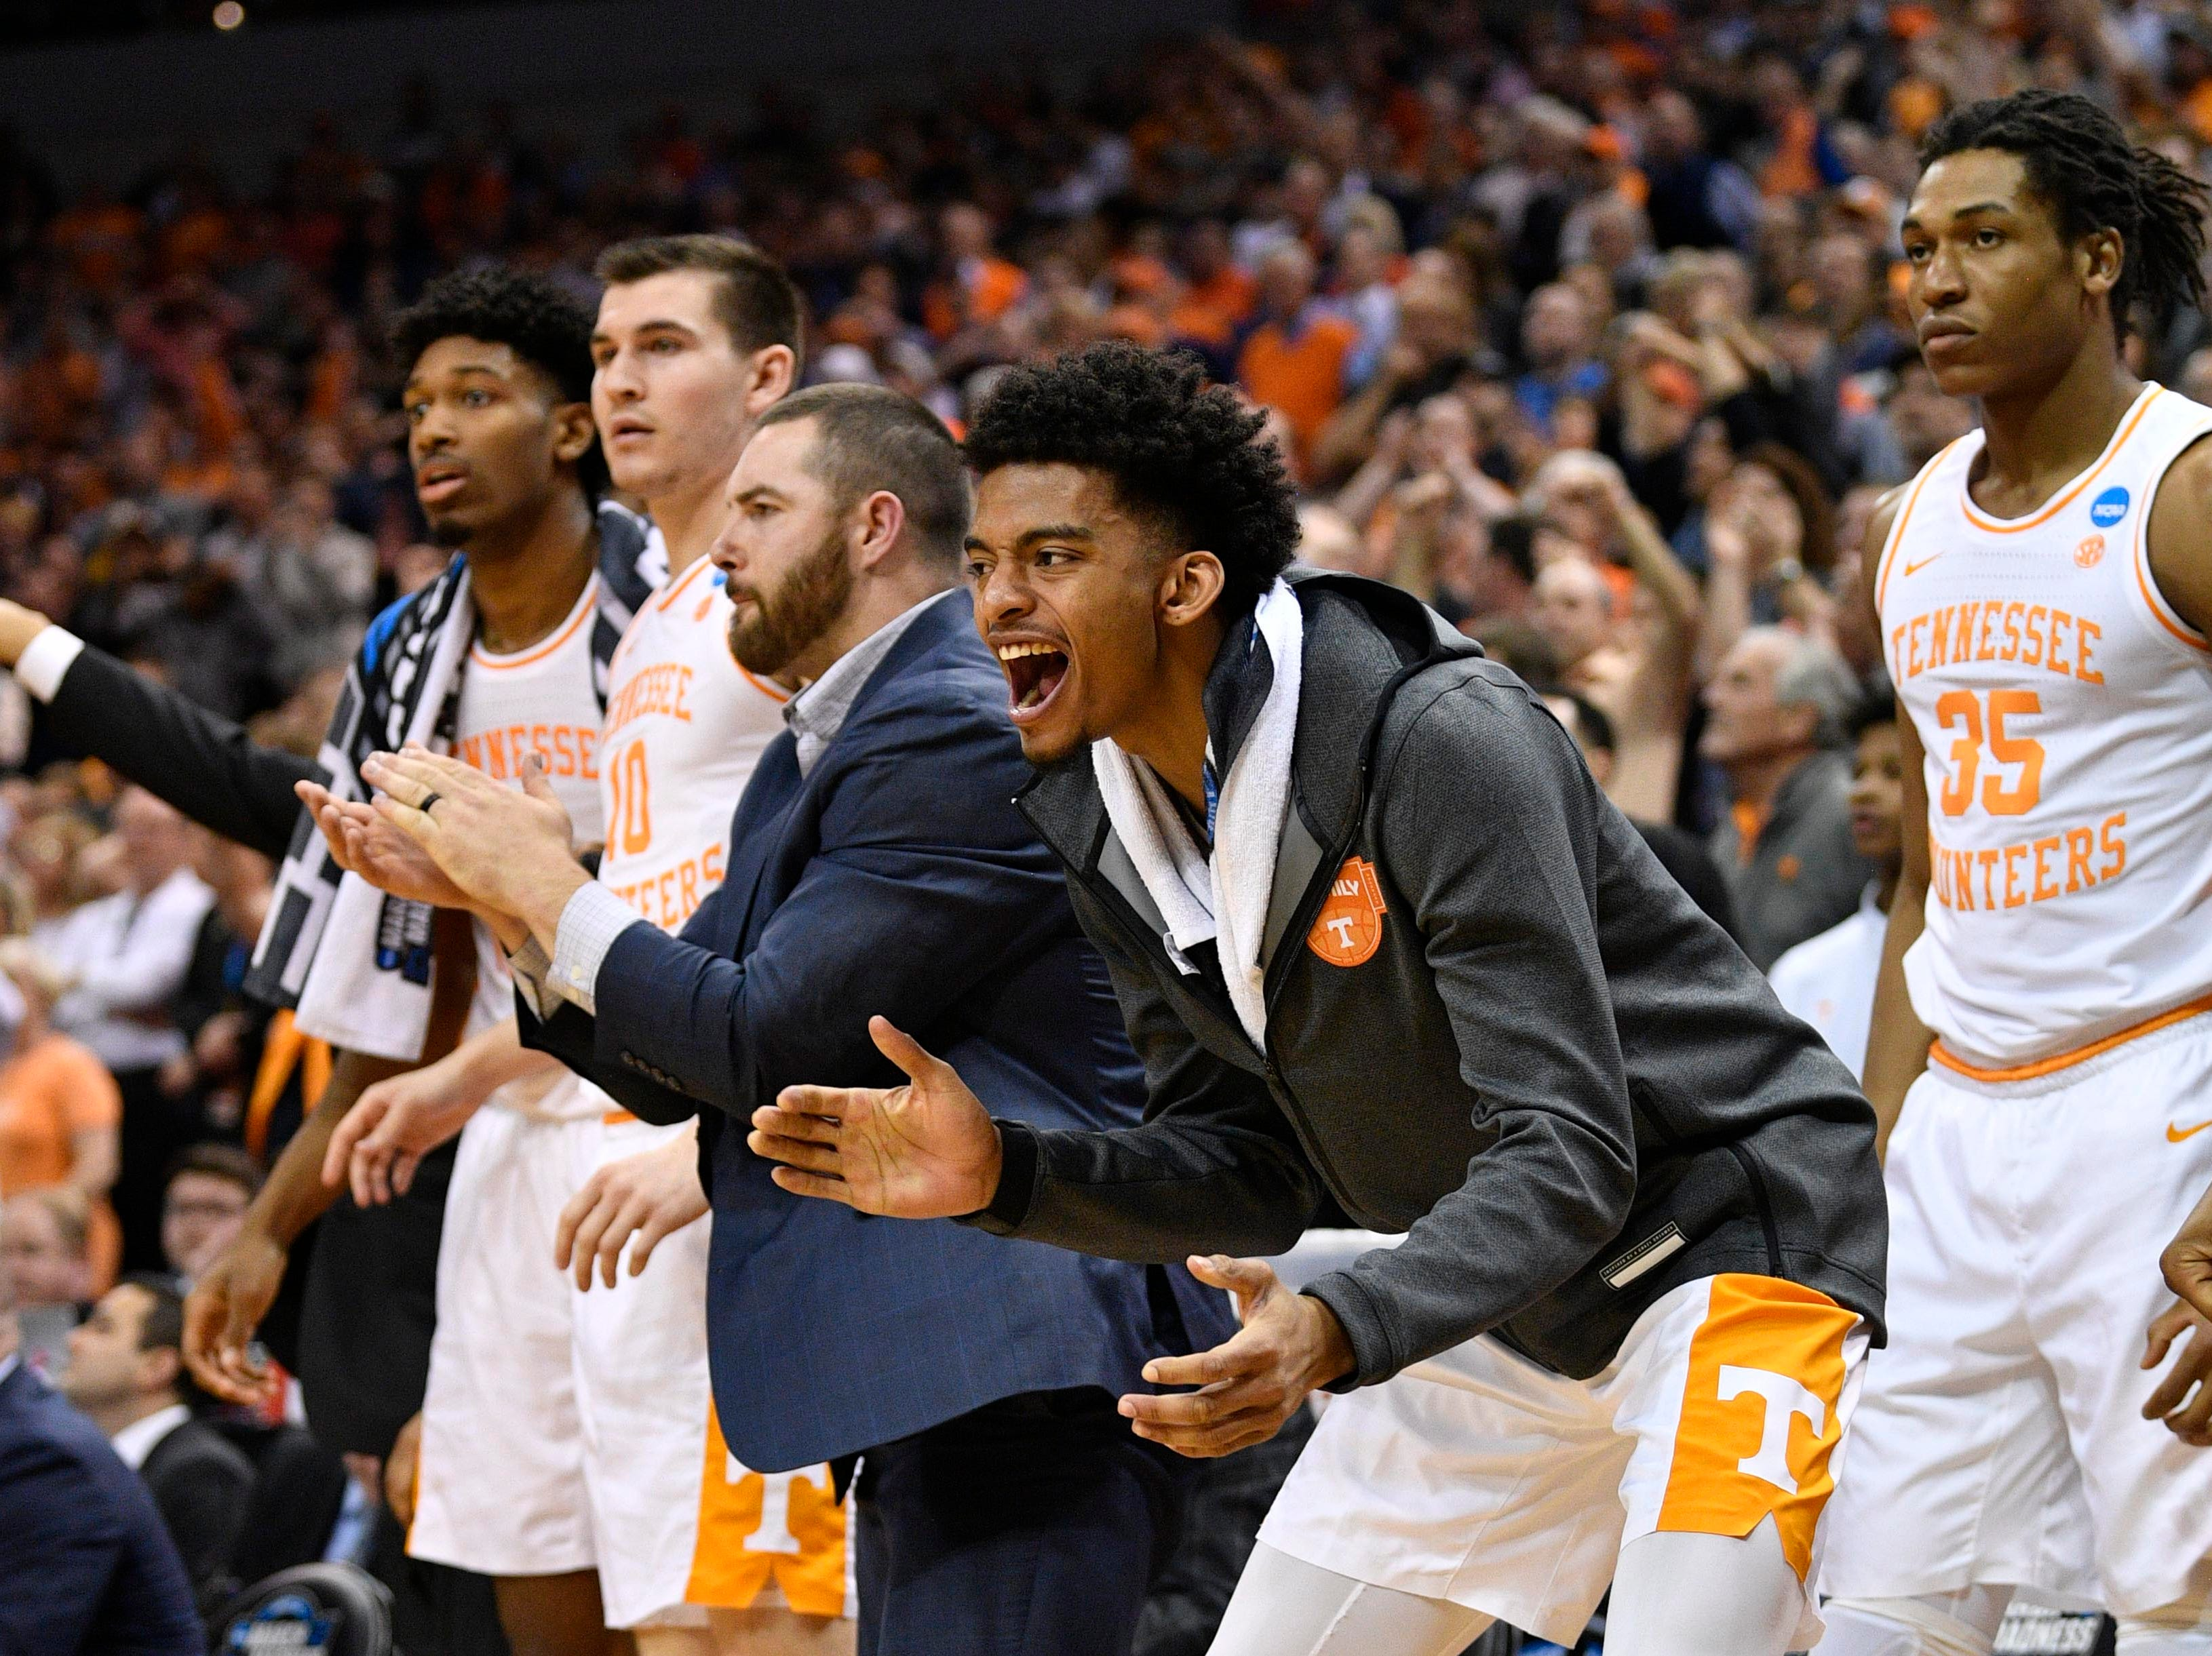 Mar 28, 2019; Louisville, KY, United States; Players react on the Tennessee Volunteers bench during the second half in the semifinals of the south regional against the Purdue Boilermakers of the 2019 NCAA Tournament at KFC Yum Center. Mandatory Credit: Jamie Rhodes-USA TODAY Sports